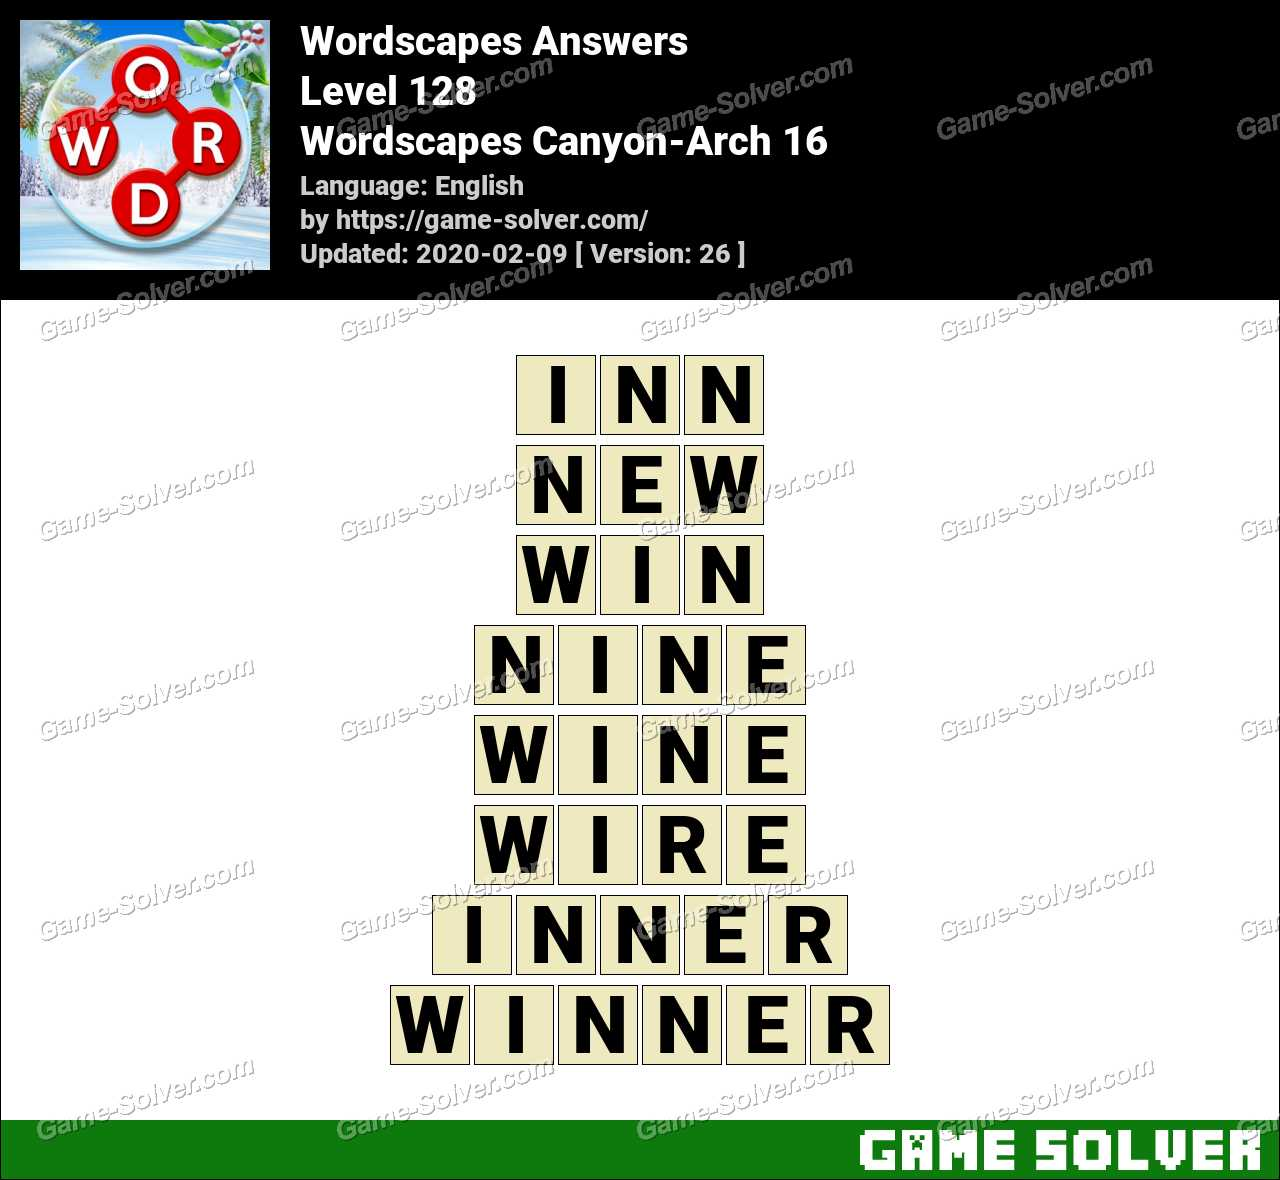 Wordscapes Canyon-Arch 16 Answers